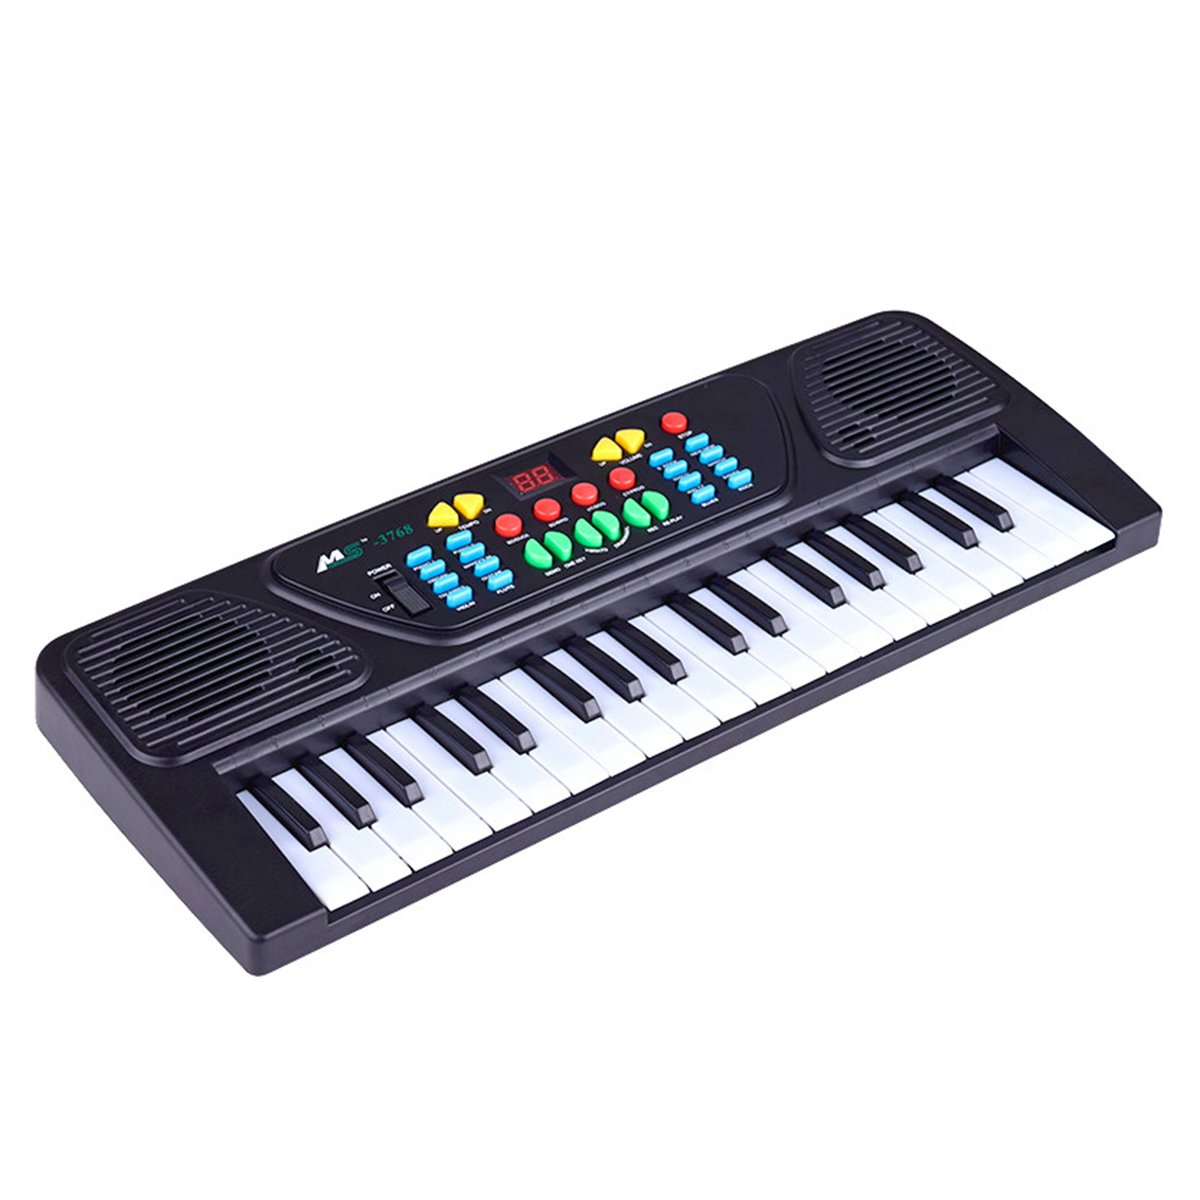 TOYMYTOY Electronic Organ Keyboard Piano Portable Multi-function Kid Electric Piano Organ Children Educational Toy 37 Keys (Black)